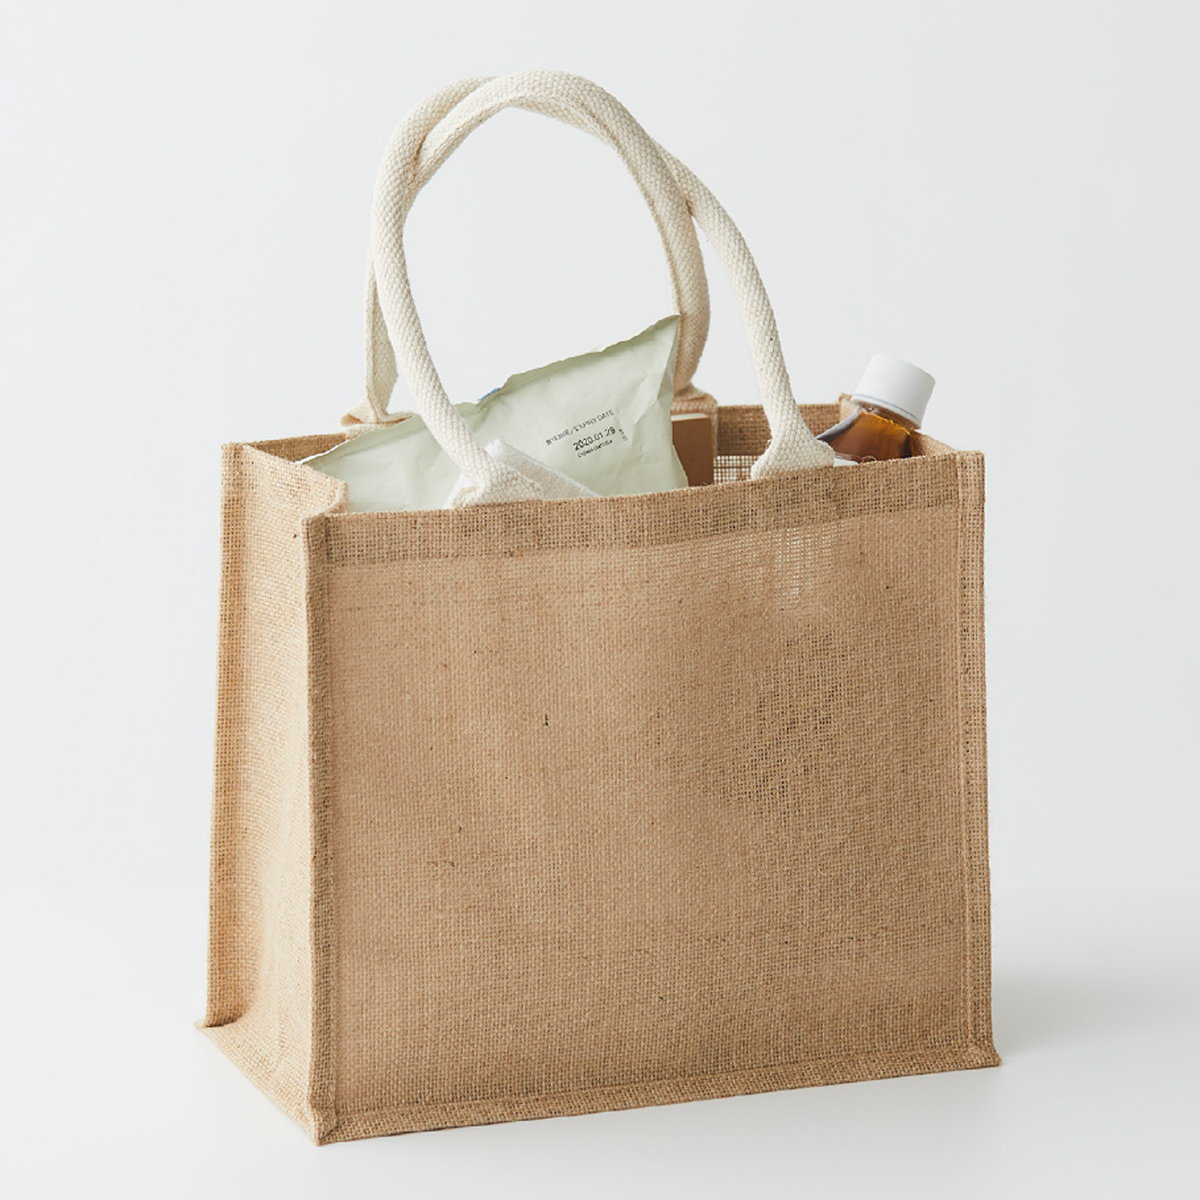 MUJI Launches New Reusable Jute Tote Bag